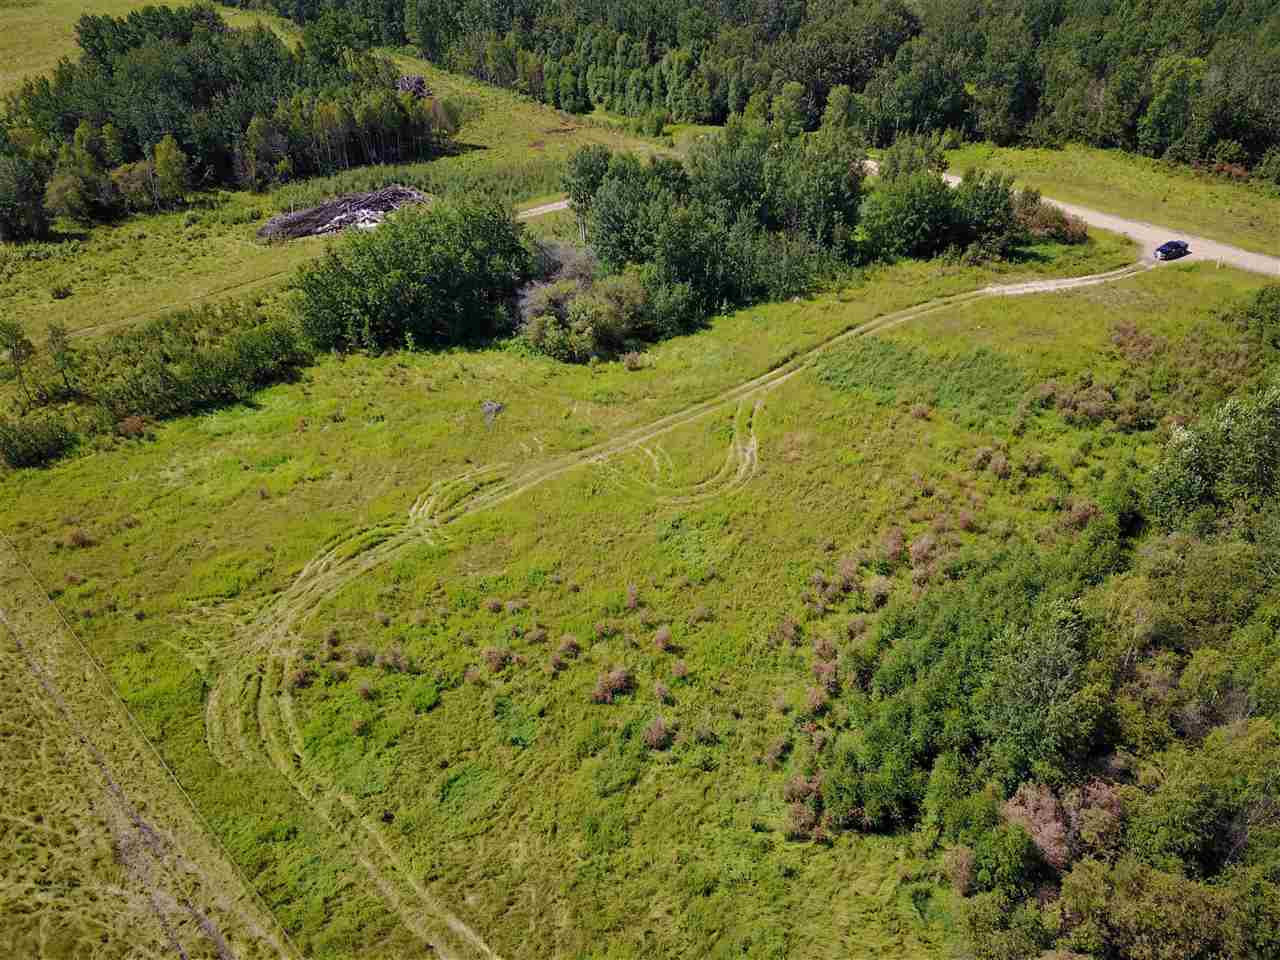 Perfect for weekend getaways or to build your dream home! This 4.99 acres of gently sloping land is out of sub-division and fenced on 3 sides. The trees on the north and south sides of the property provide privacy and a beautiful setting nestled in nature.